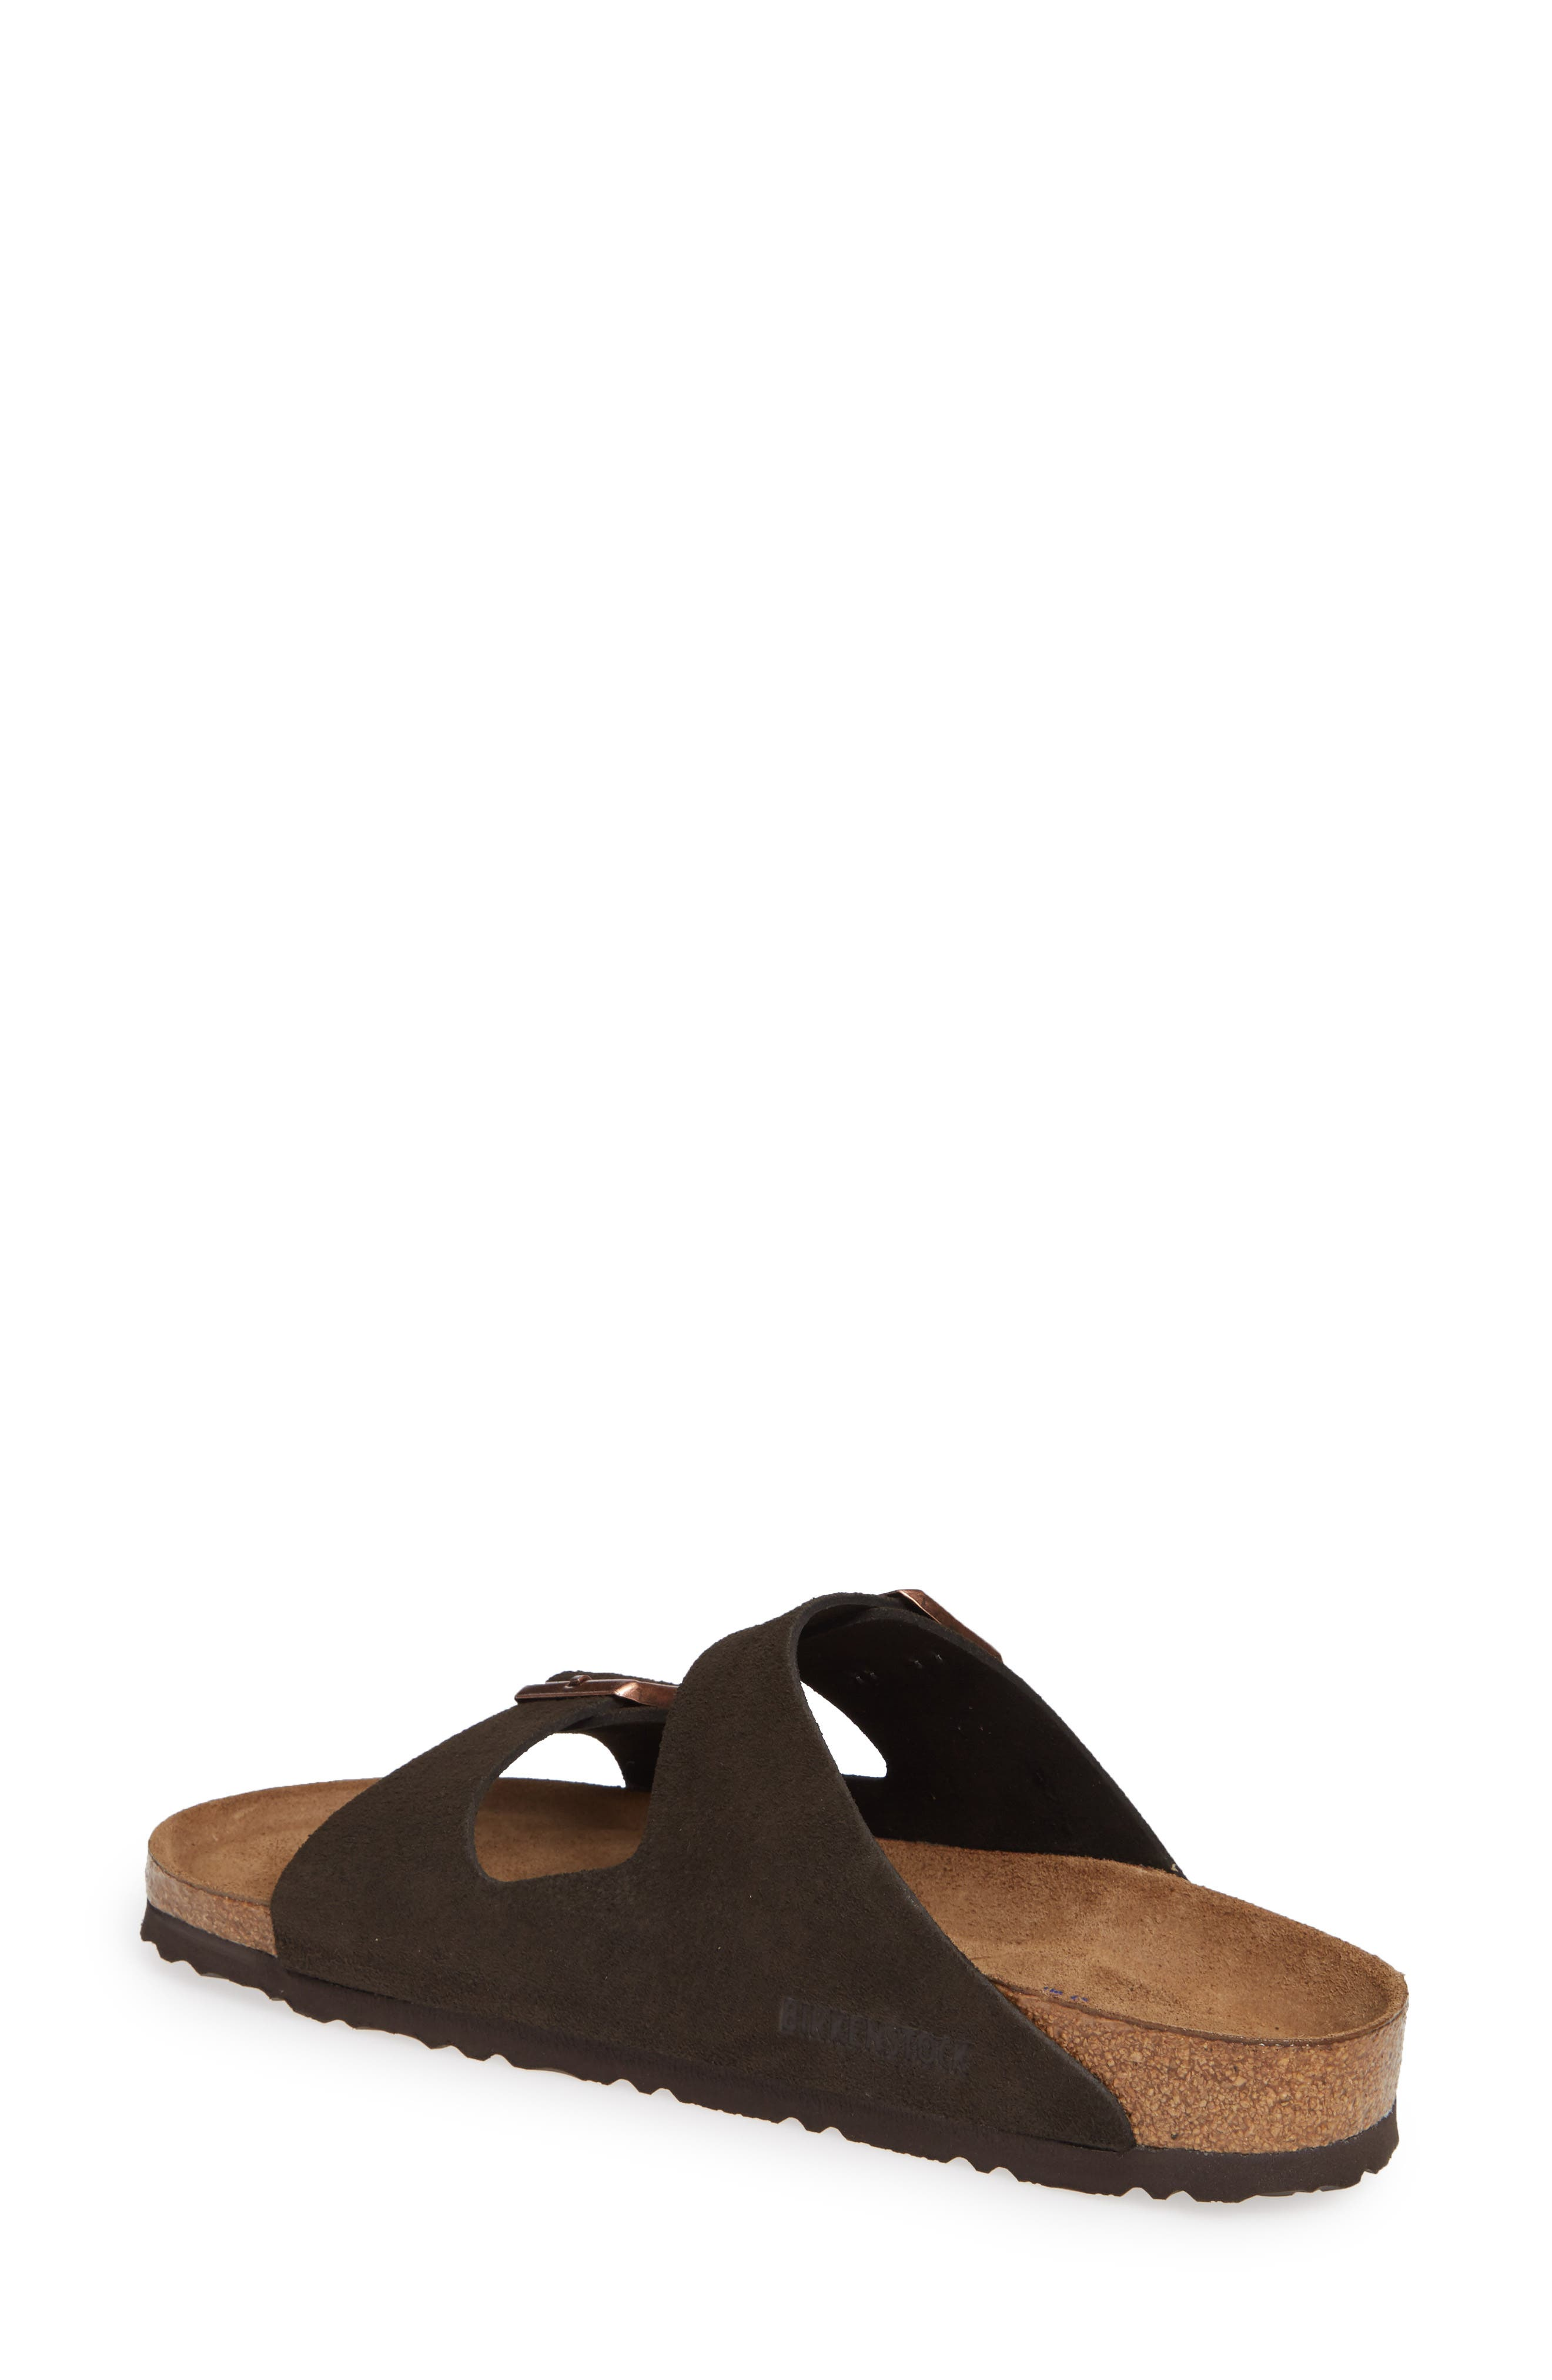 'Arizona' Soft Footbed Suede Sandal,                             Alternate thumbnail 2, color,                             MOCHA SUEDE